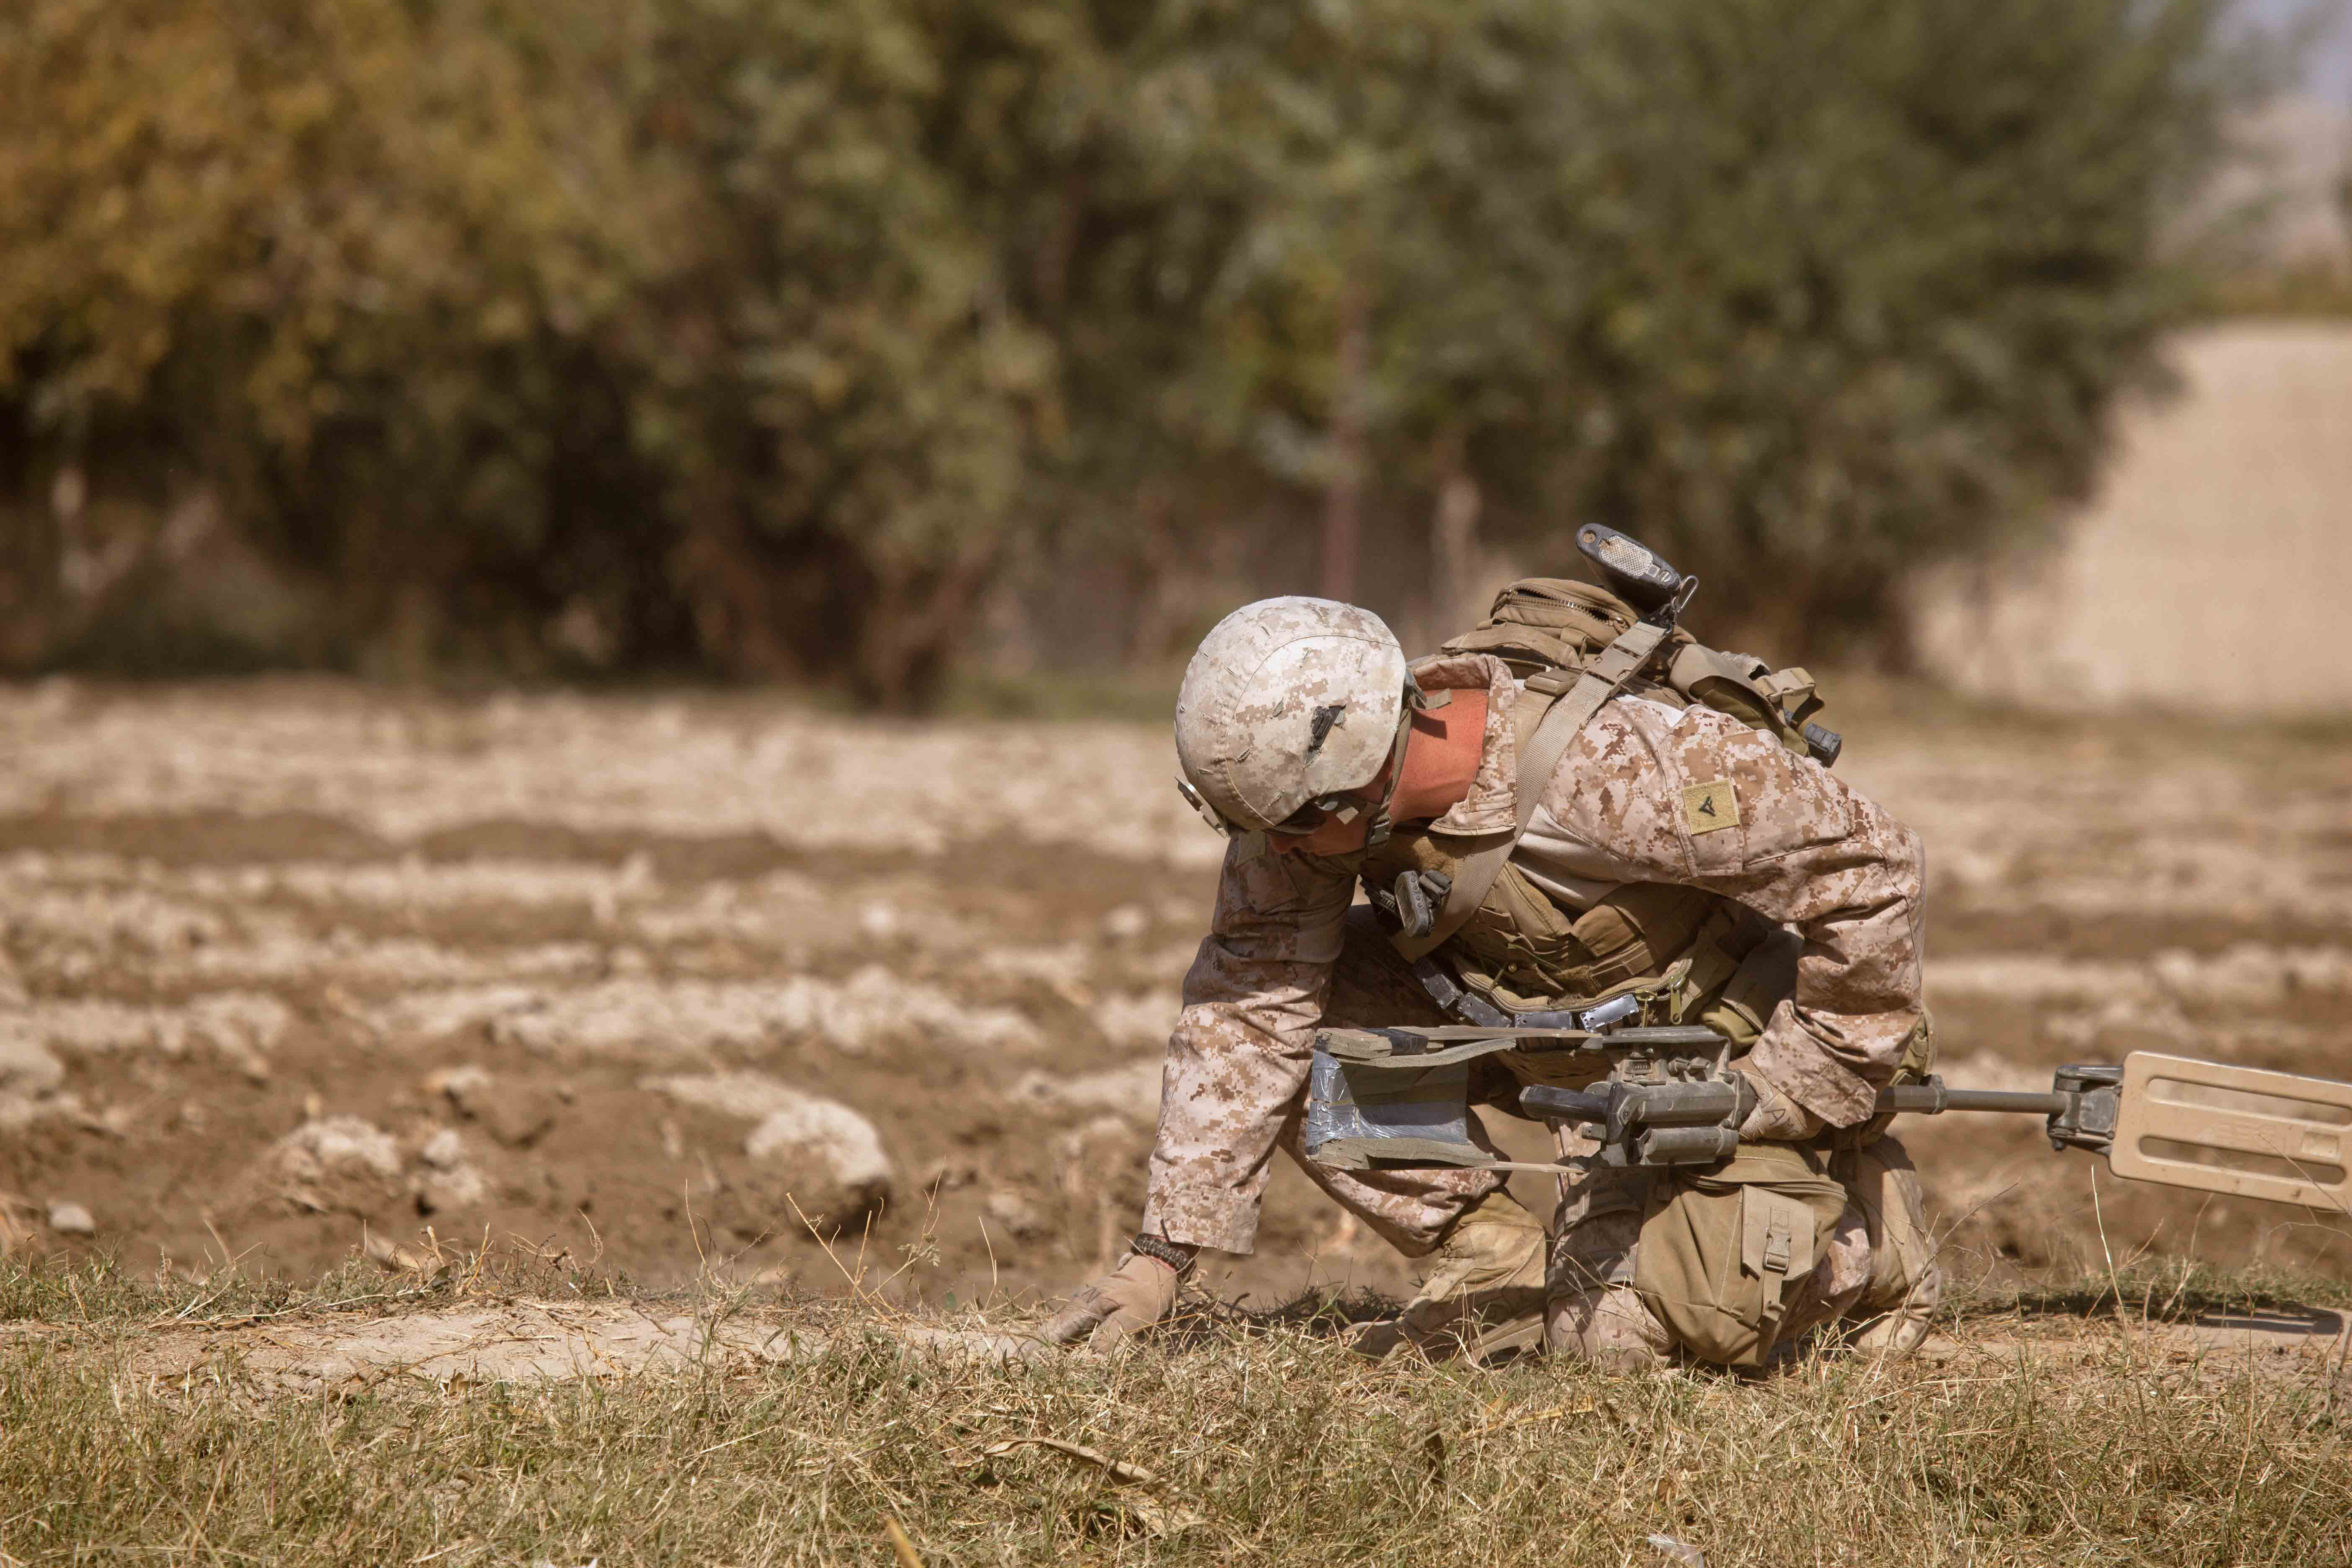 India Company's LCpl Sean Holloway pauses with his metal detector and probes for an IED while on patrol in the Southern Green Zone. (U.S. Marine Corps photo by LCpl Armando Mendoza)